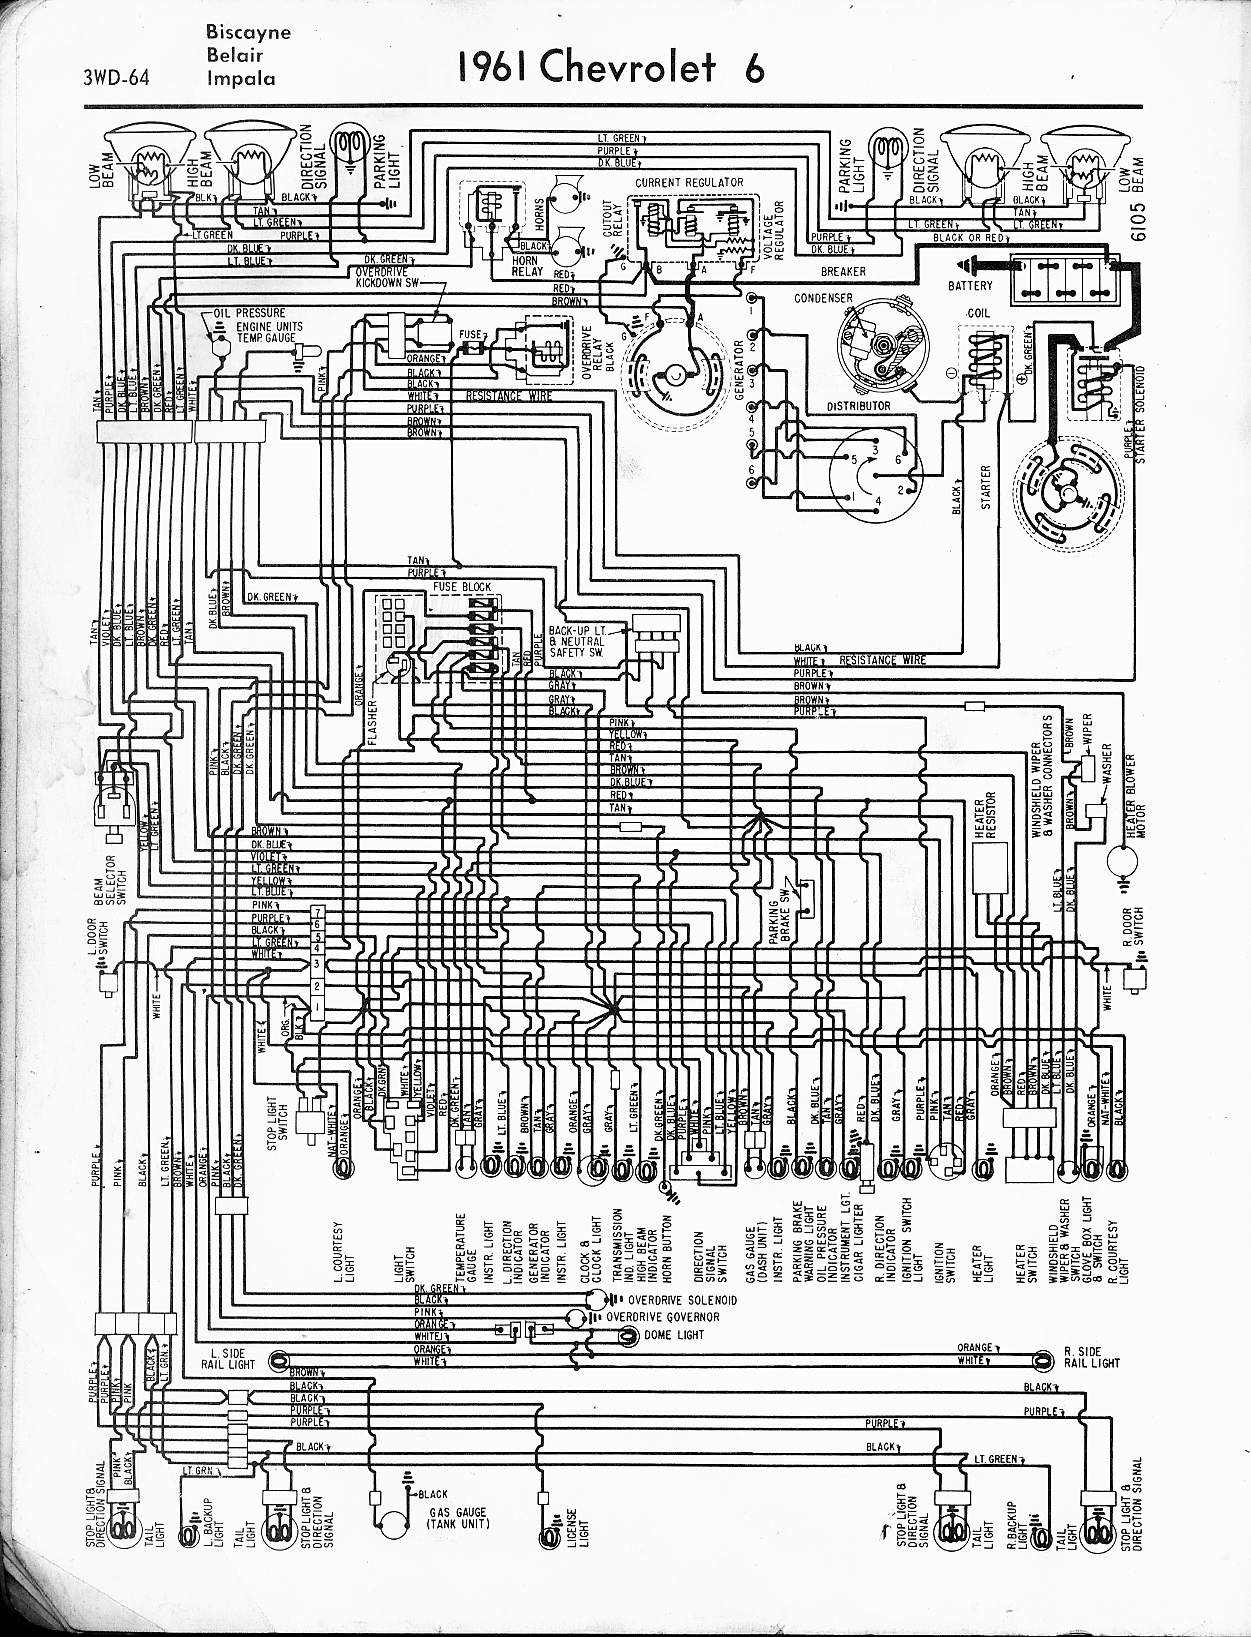 2002 chevy impala starter wiring diagram 2002 57 65 chevy wiring diagrams on 2002 chevy impala starter wiring diagram